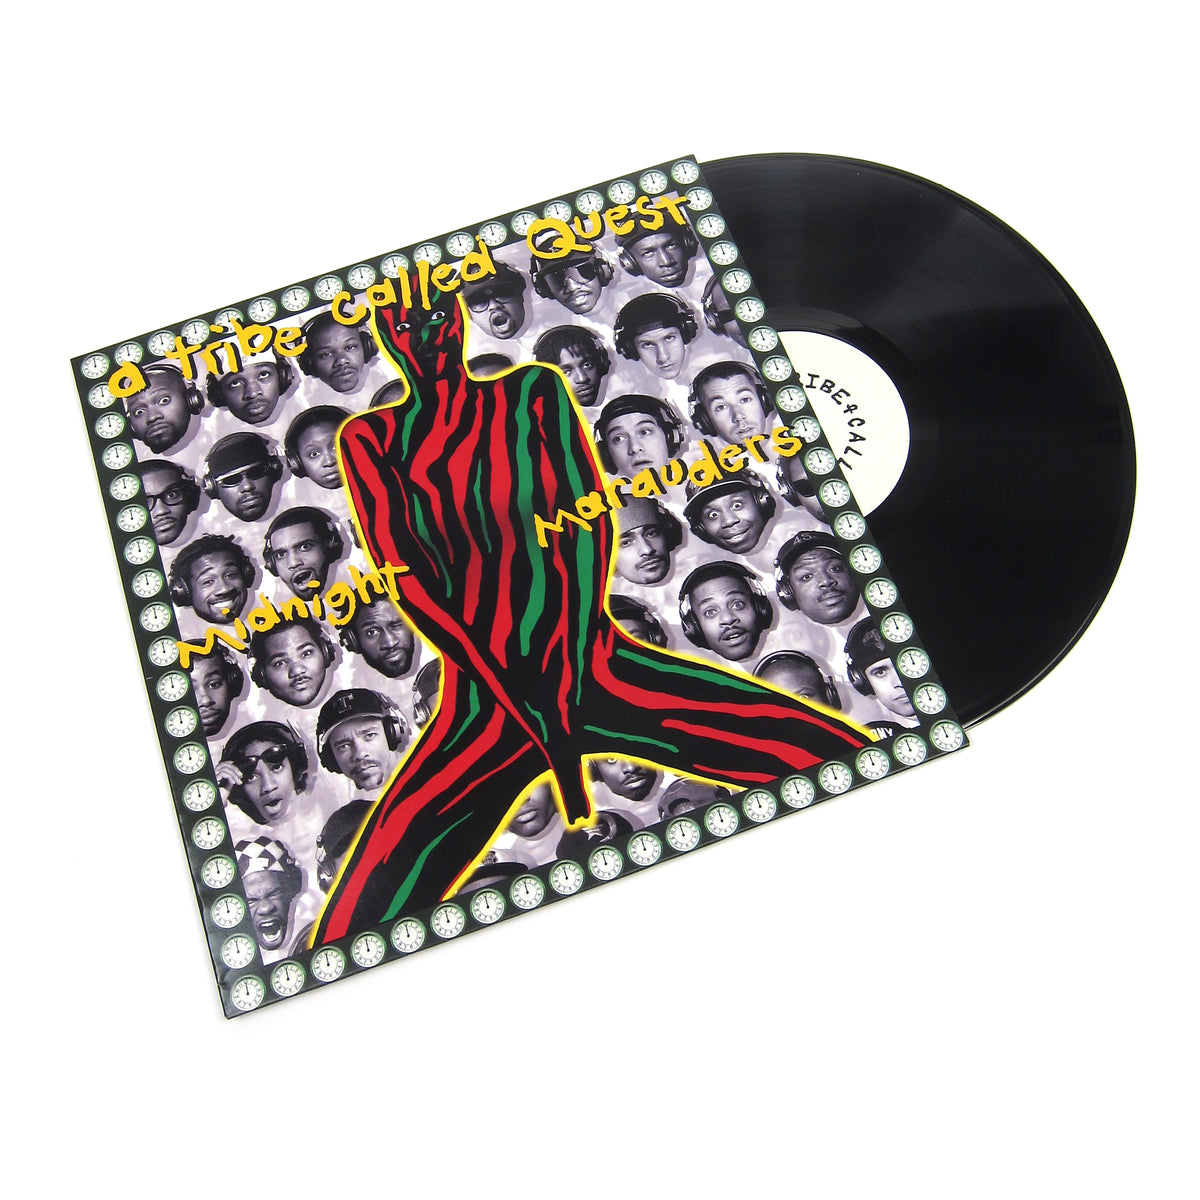 A Tribe Called Quest: Vinyl LP Album Pack (People's Instinctive, Low End Theory, Midnight Marauders)